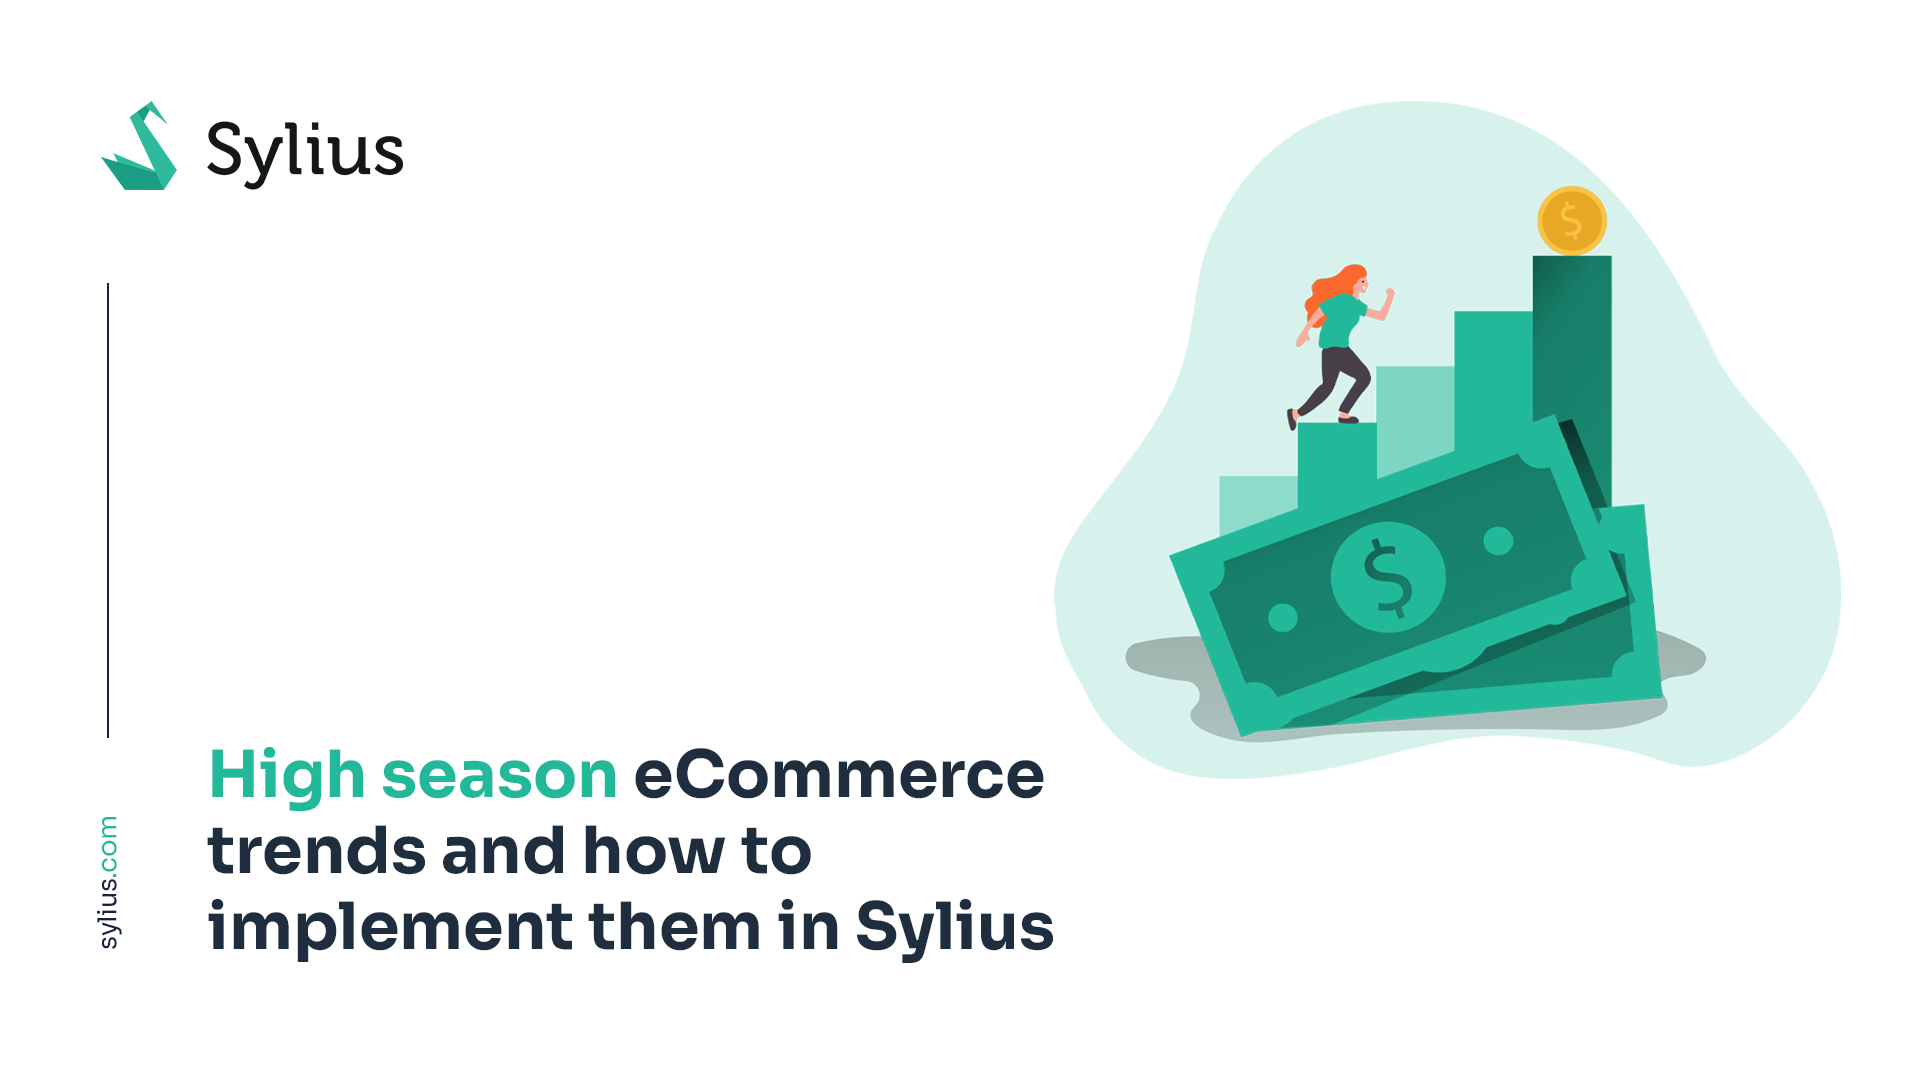 High season eCommerce trends and how to implement them in Sylius